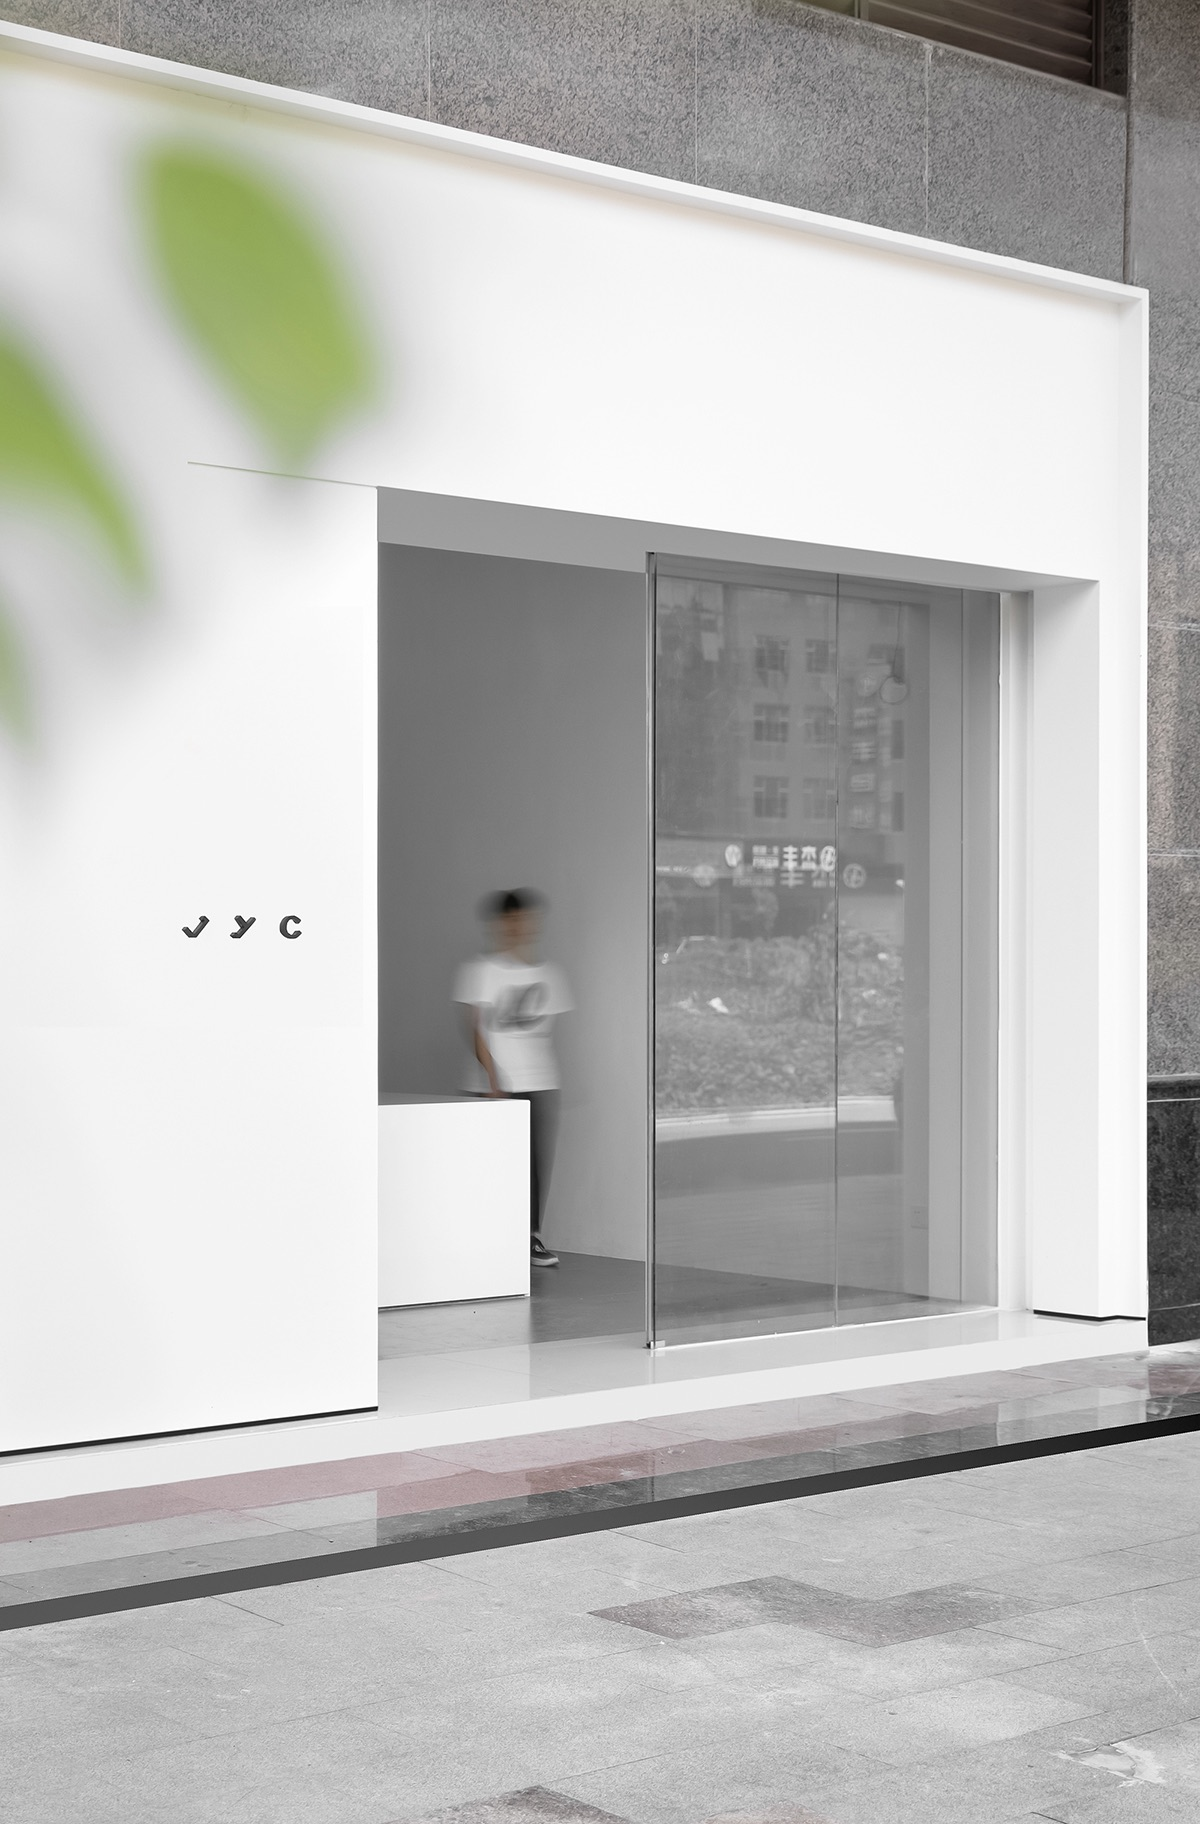 jyc-clothing-office-2